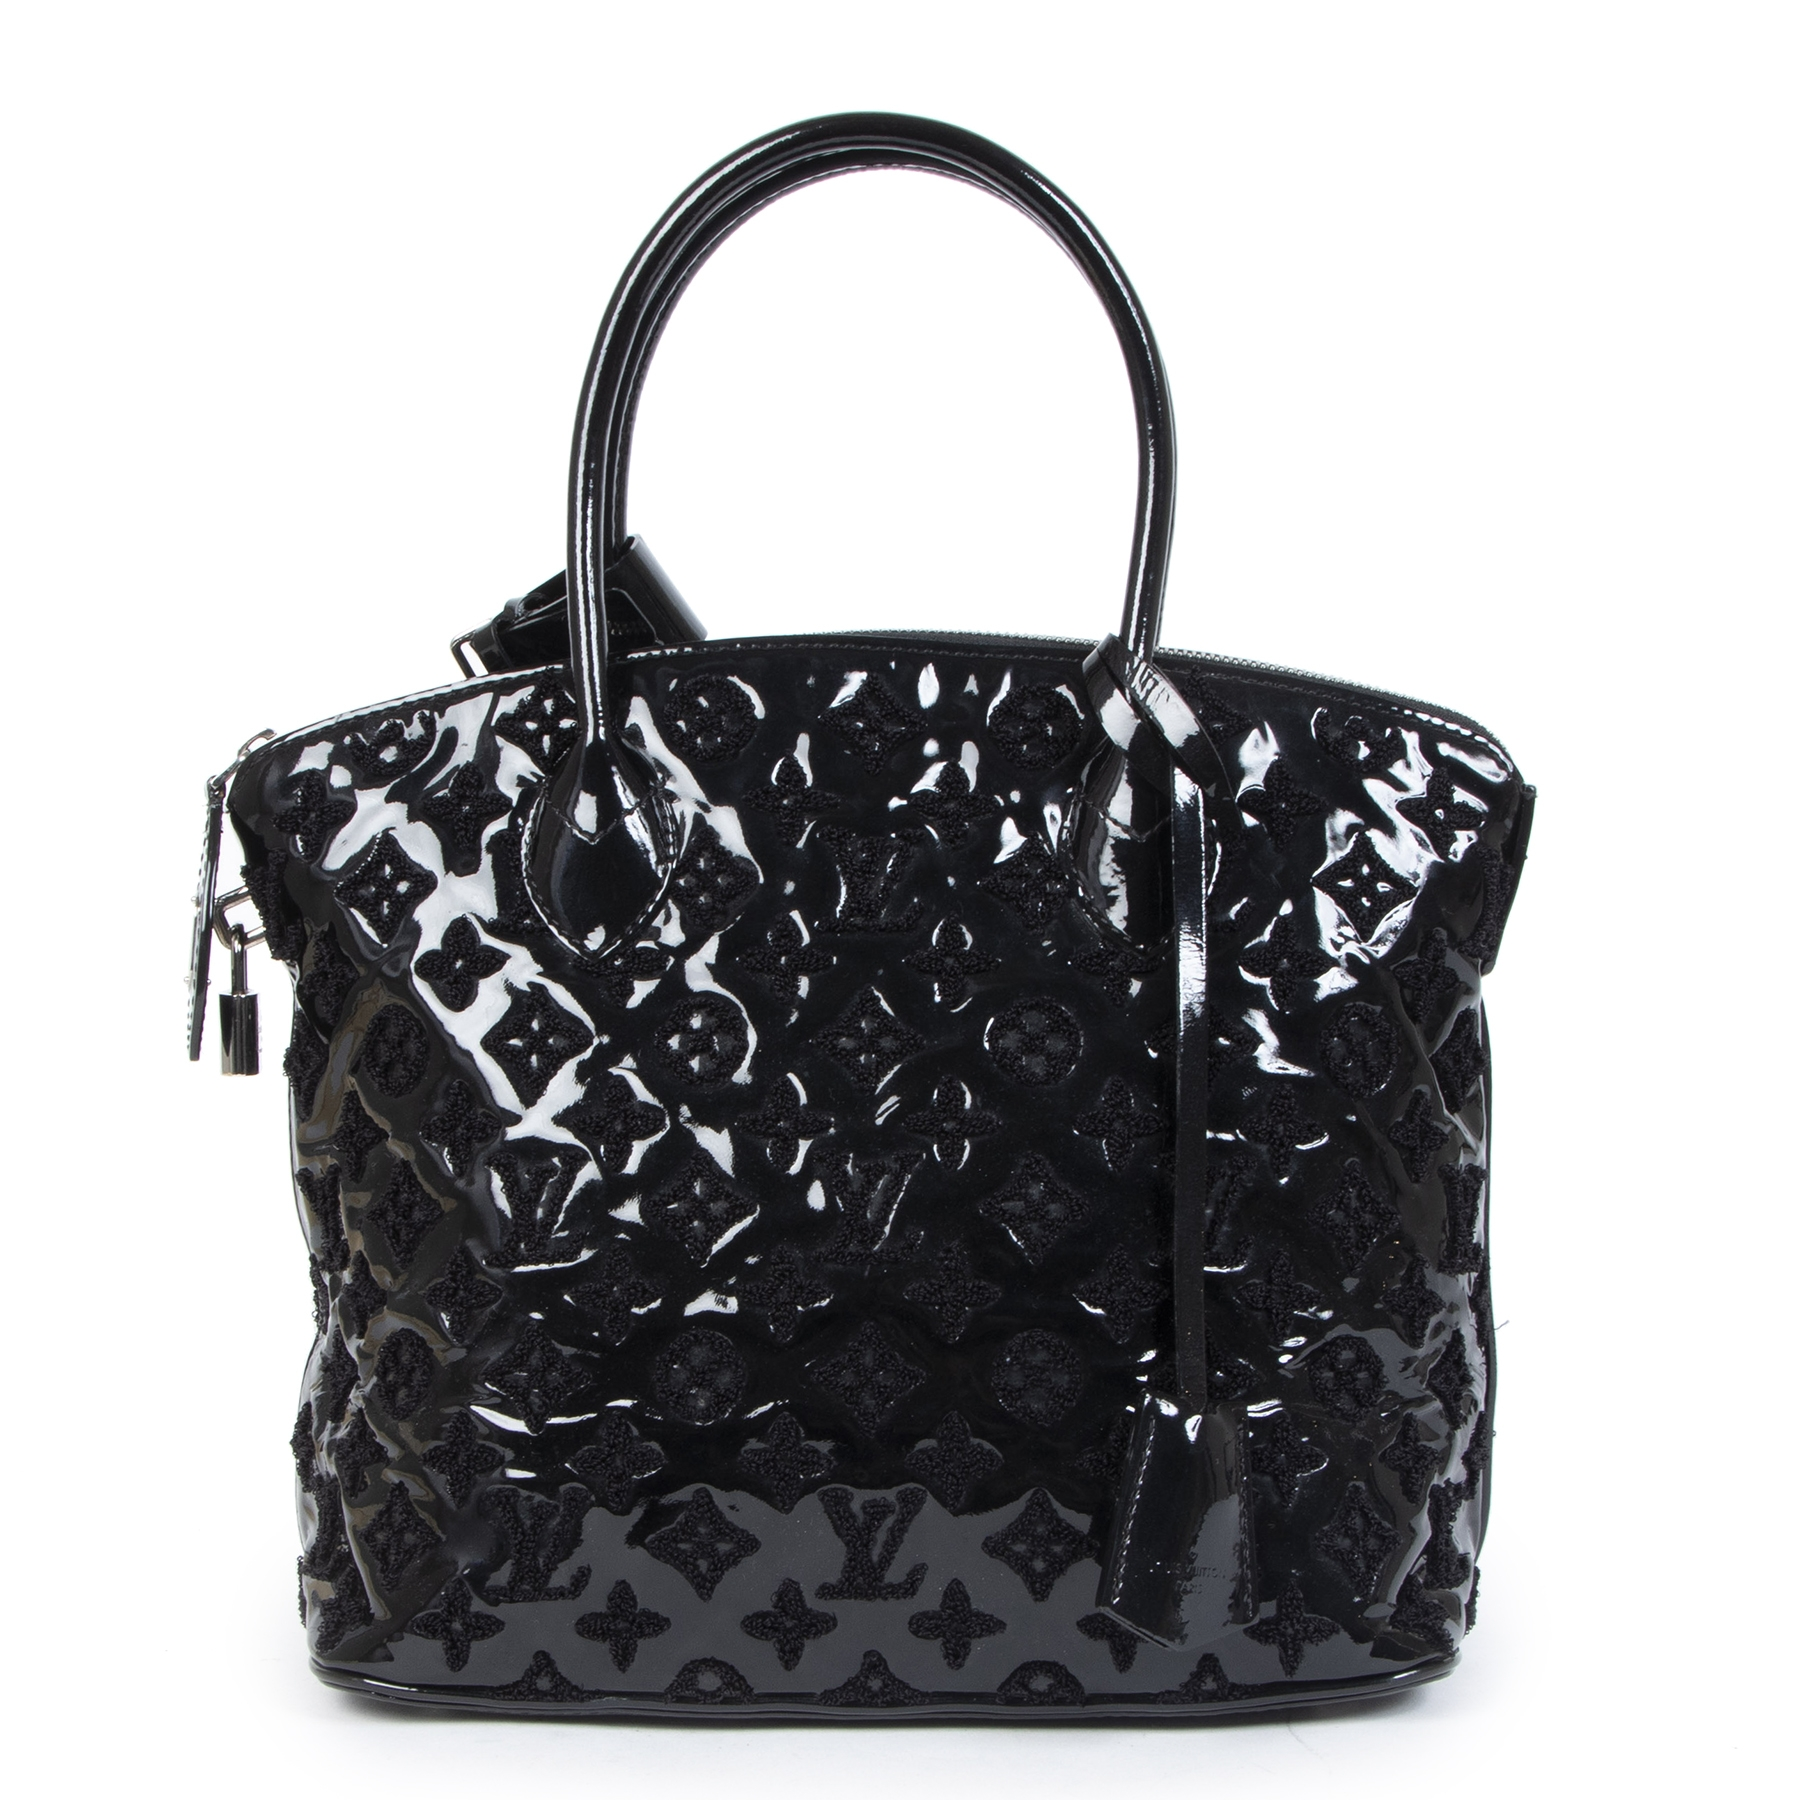 Authentieke tweedehands vintage Louis Vuitton Black Patent Leather Fascination Lock It Bag koop online webshop LabelLOV